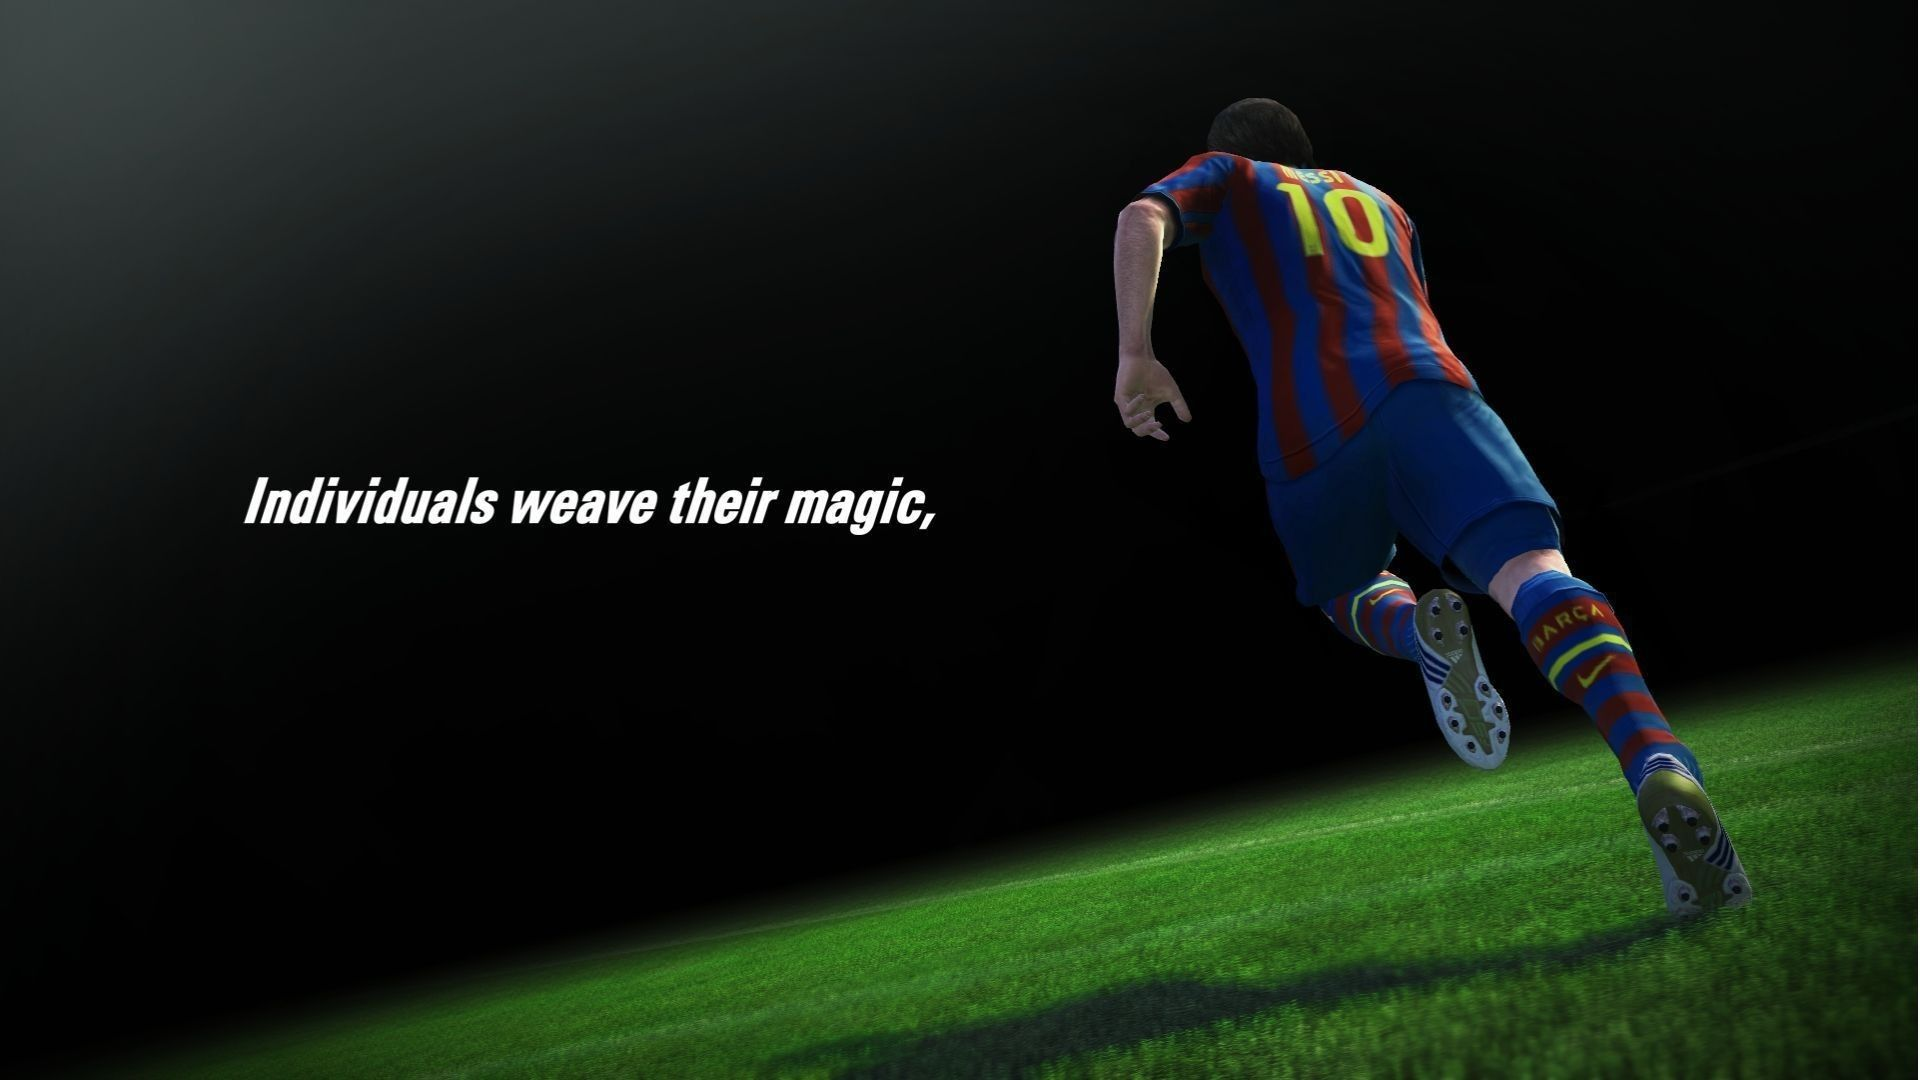 Soccer Laptop Wallpapers Top Free Soccer Laptop Backgrounds Wallpaperaccess